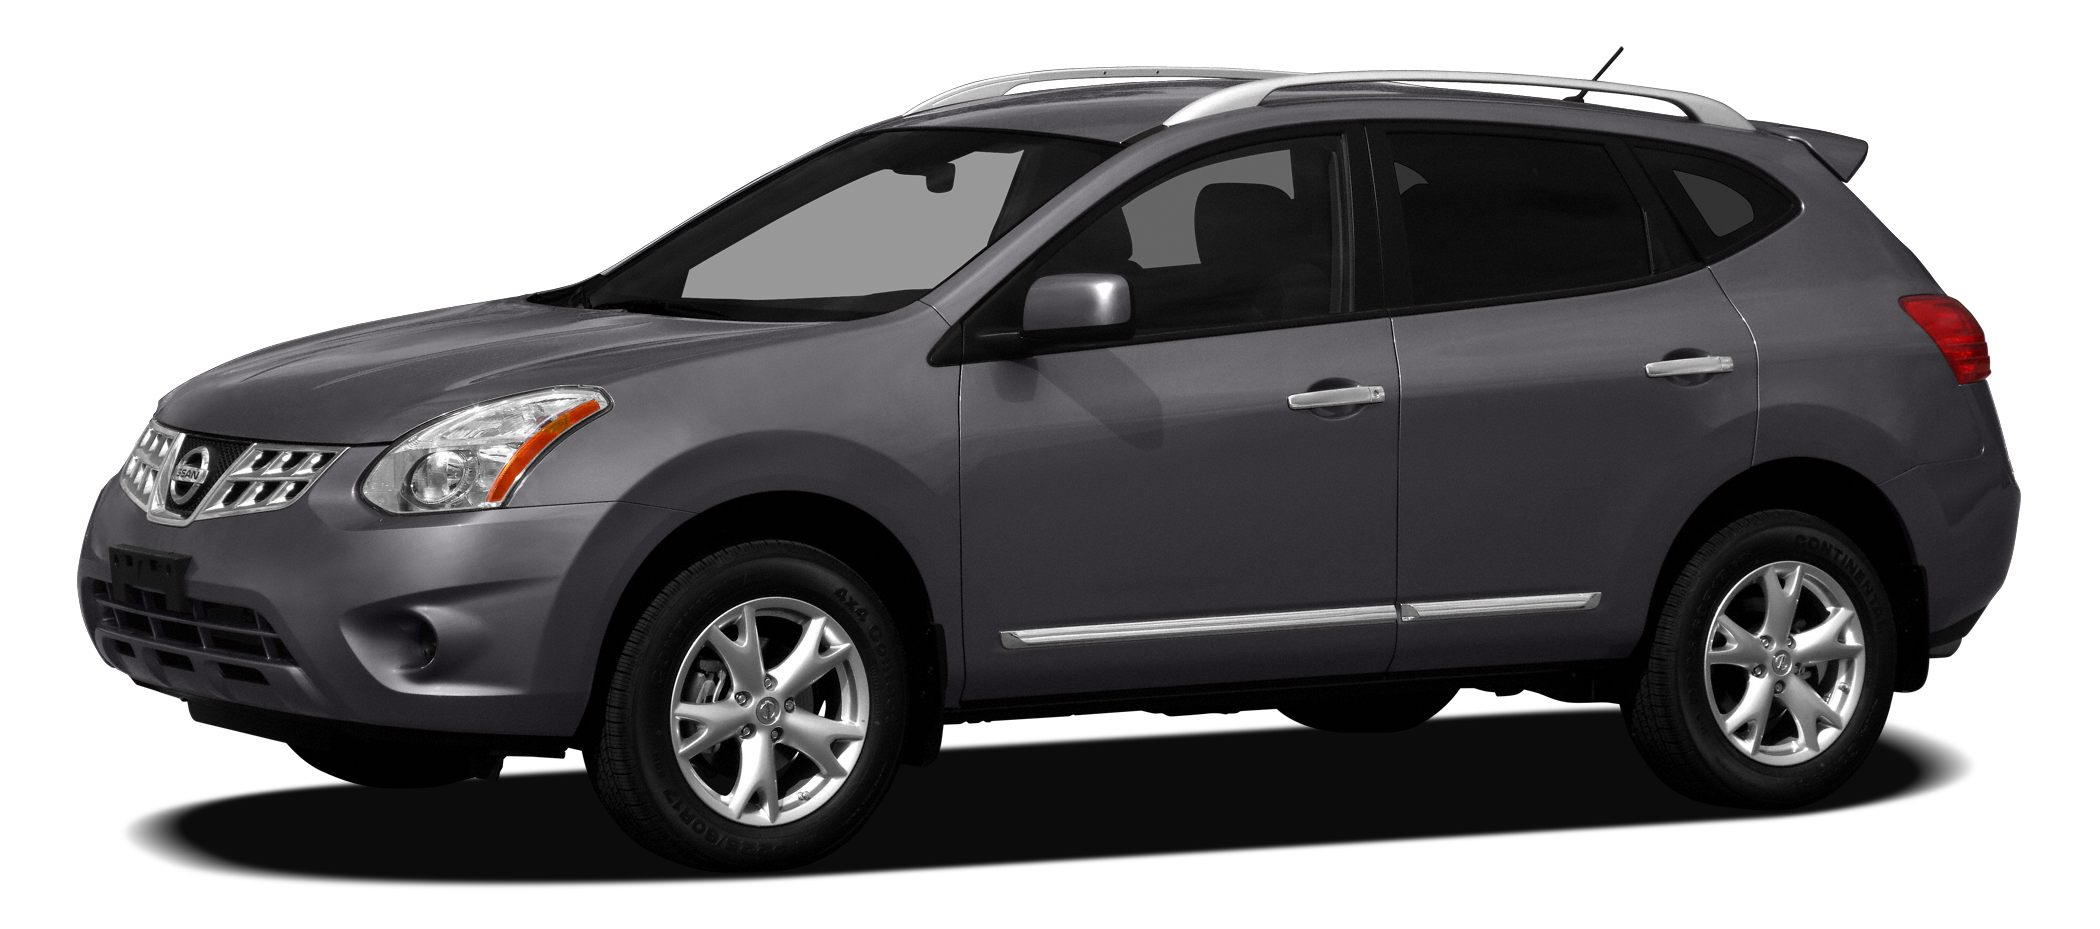 2011 Nissan Rogue SV  WHEN IT COMES TOEXCELLENCE IN USED CAR SALES YOU KNOW YOURE AT STAR AUTO